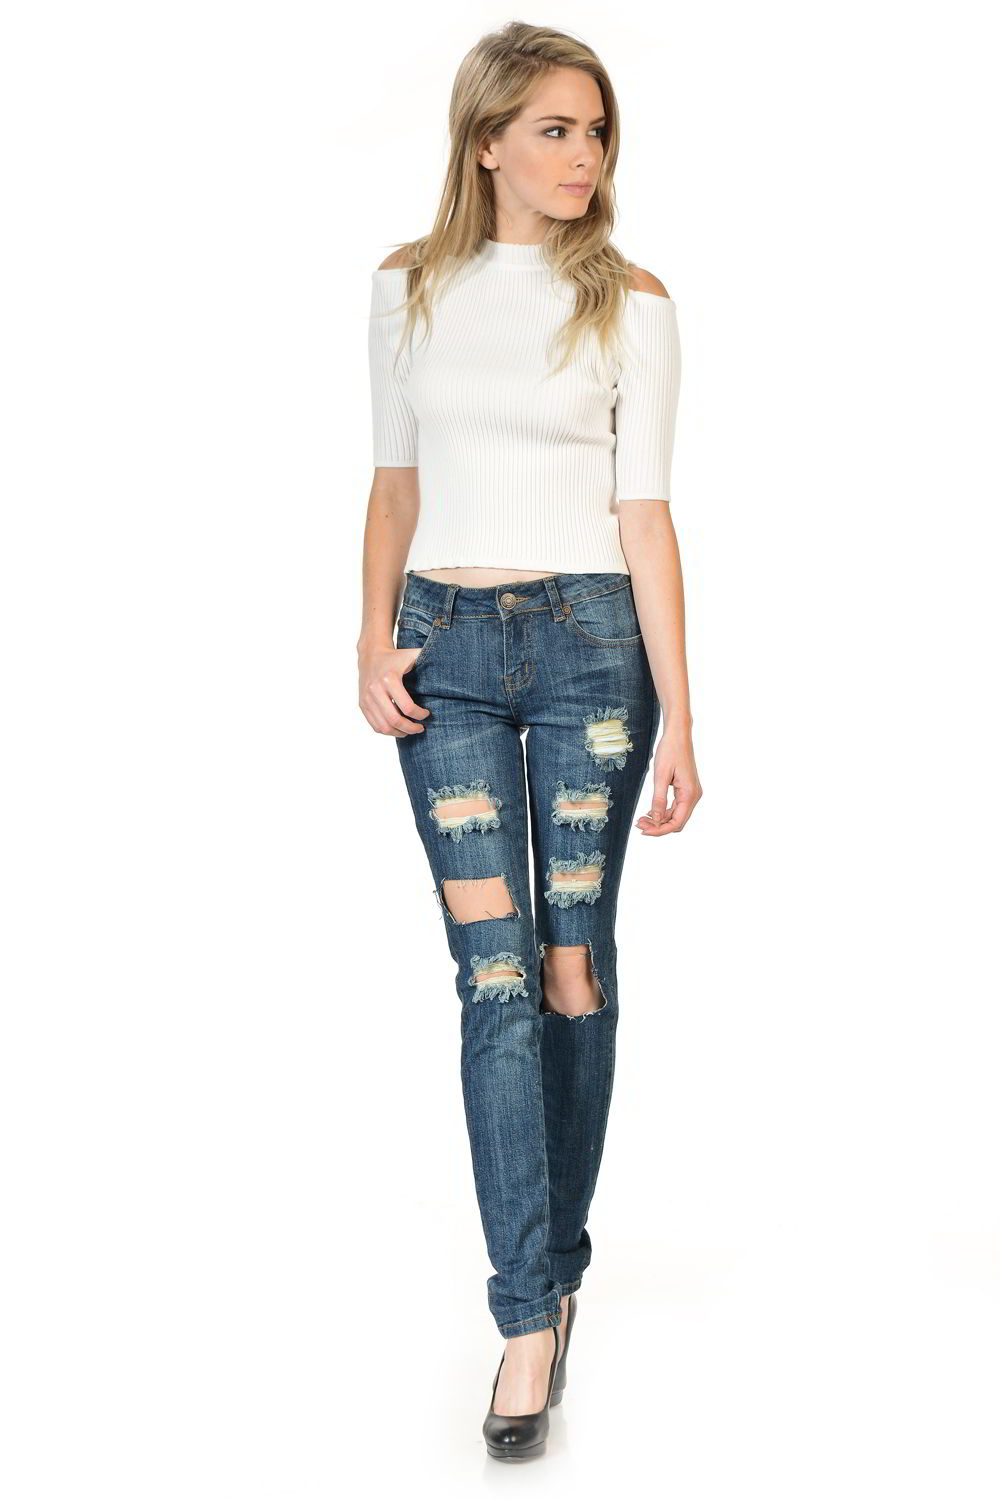 Sweet Look Premium Edition Women's Jeans - Push Up - Style WY5034C-R